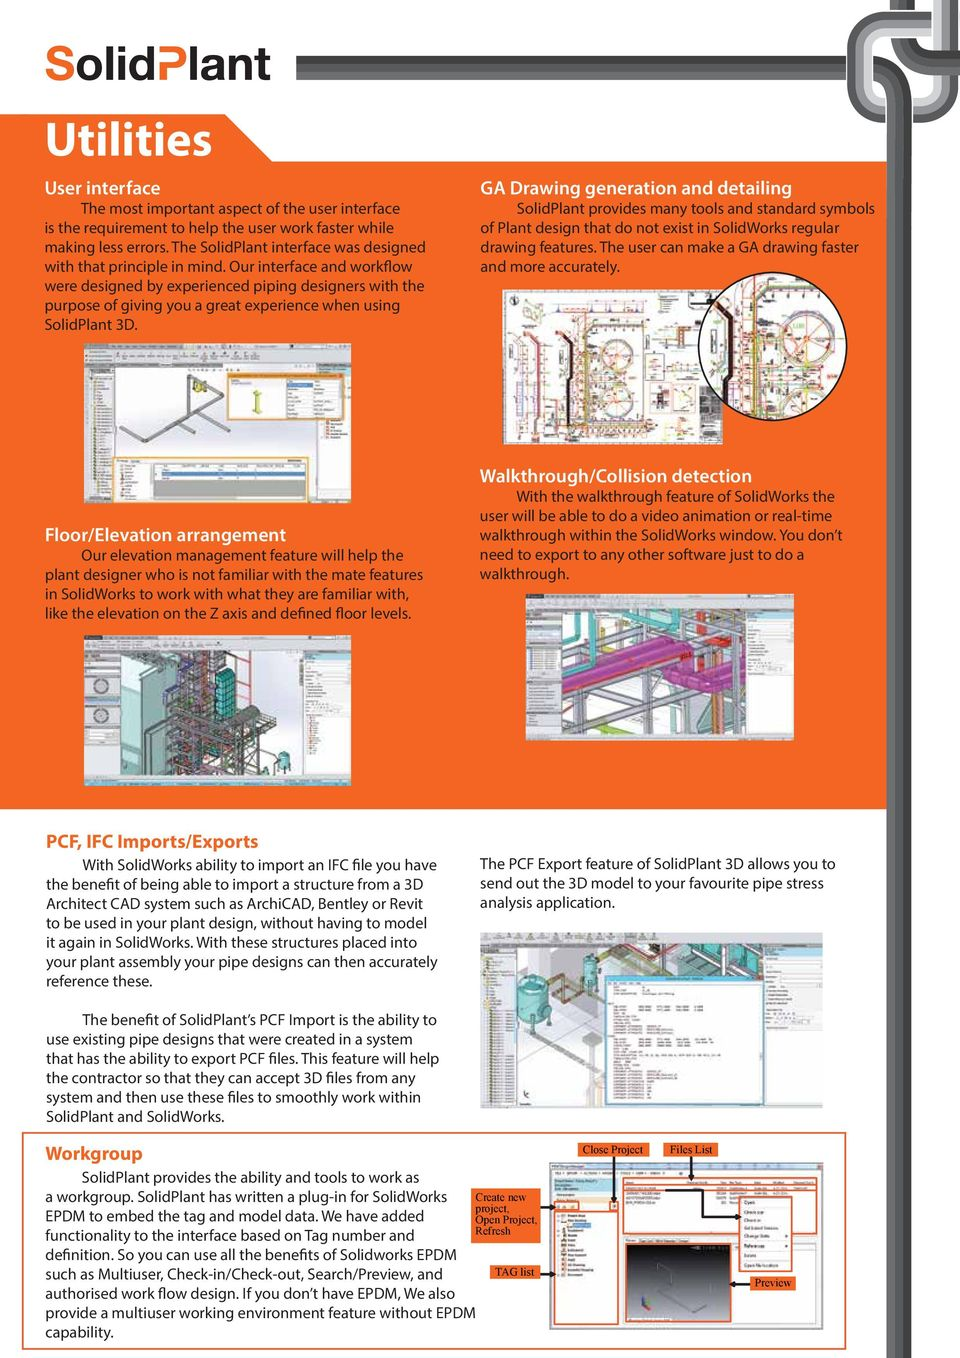 Comprehensive Plant Design For Solidworks Route It Your Way Pdf Piping Layout Ppt Our Interface And Workflow Were Designed By Experienced Designers With The Purpose Of Giving You